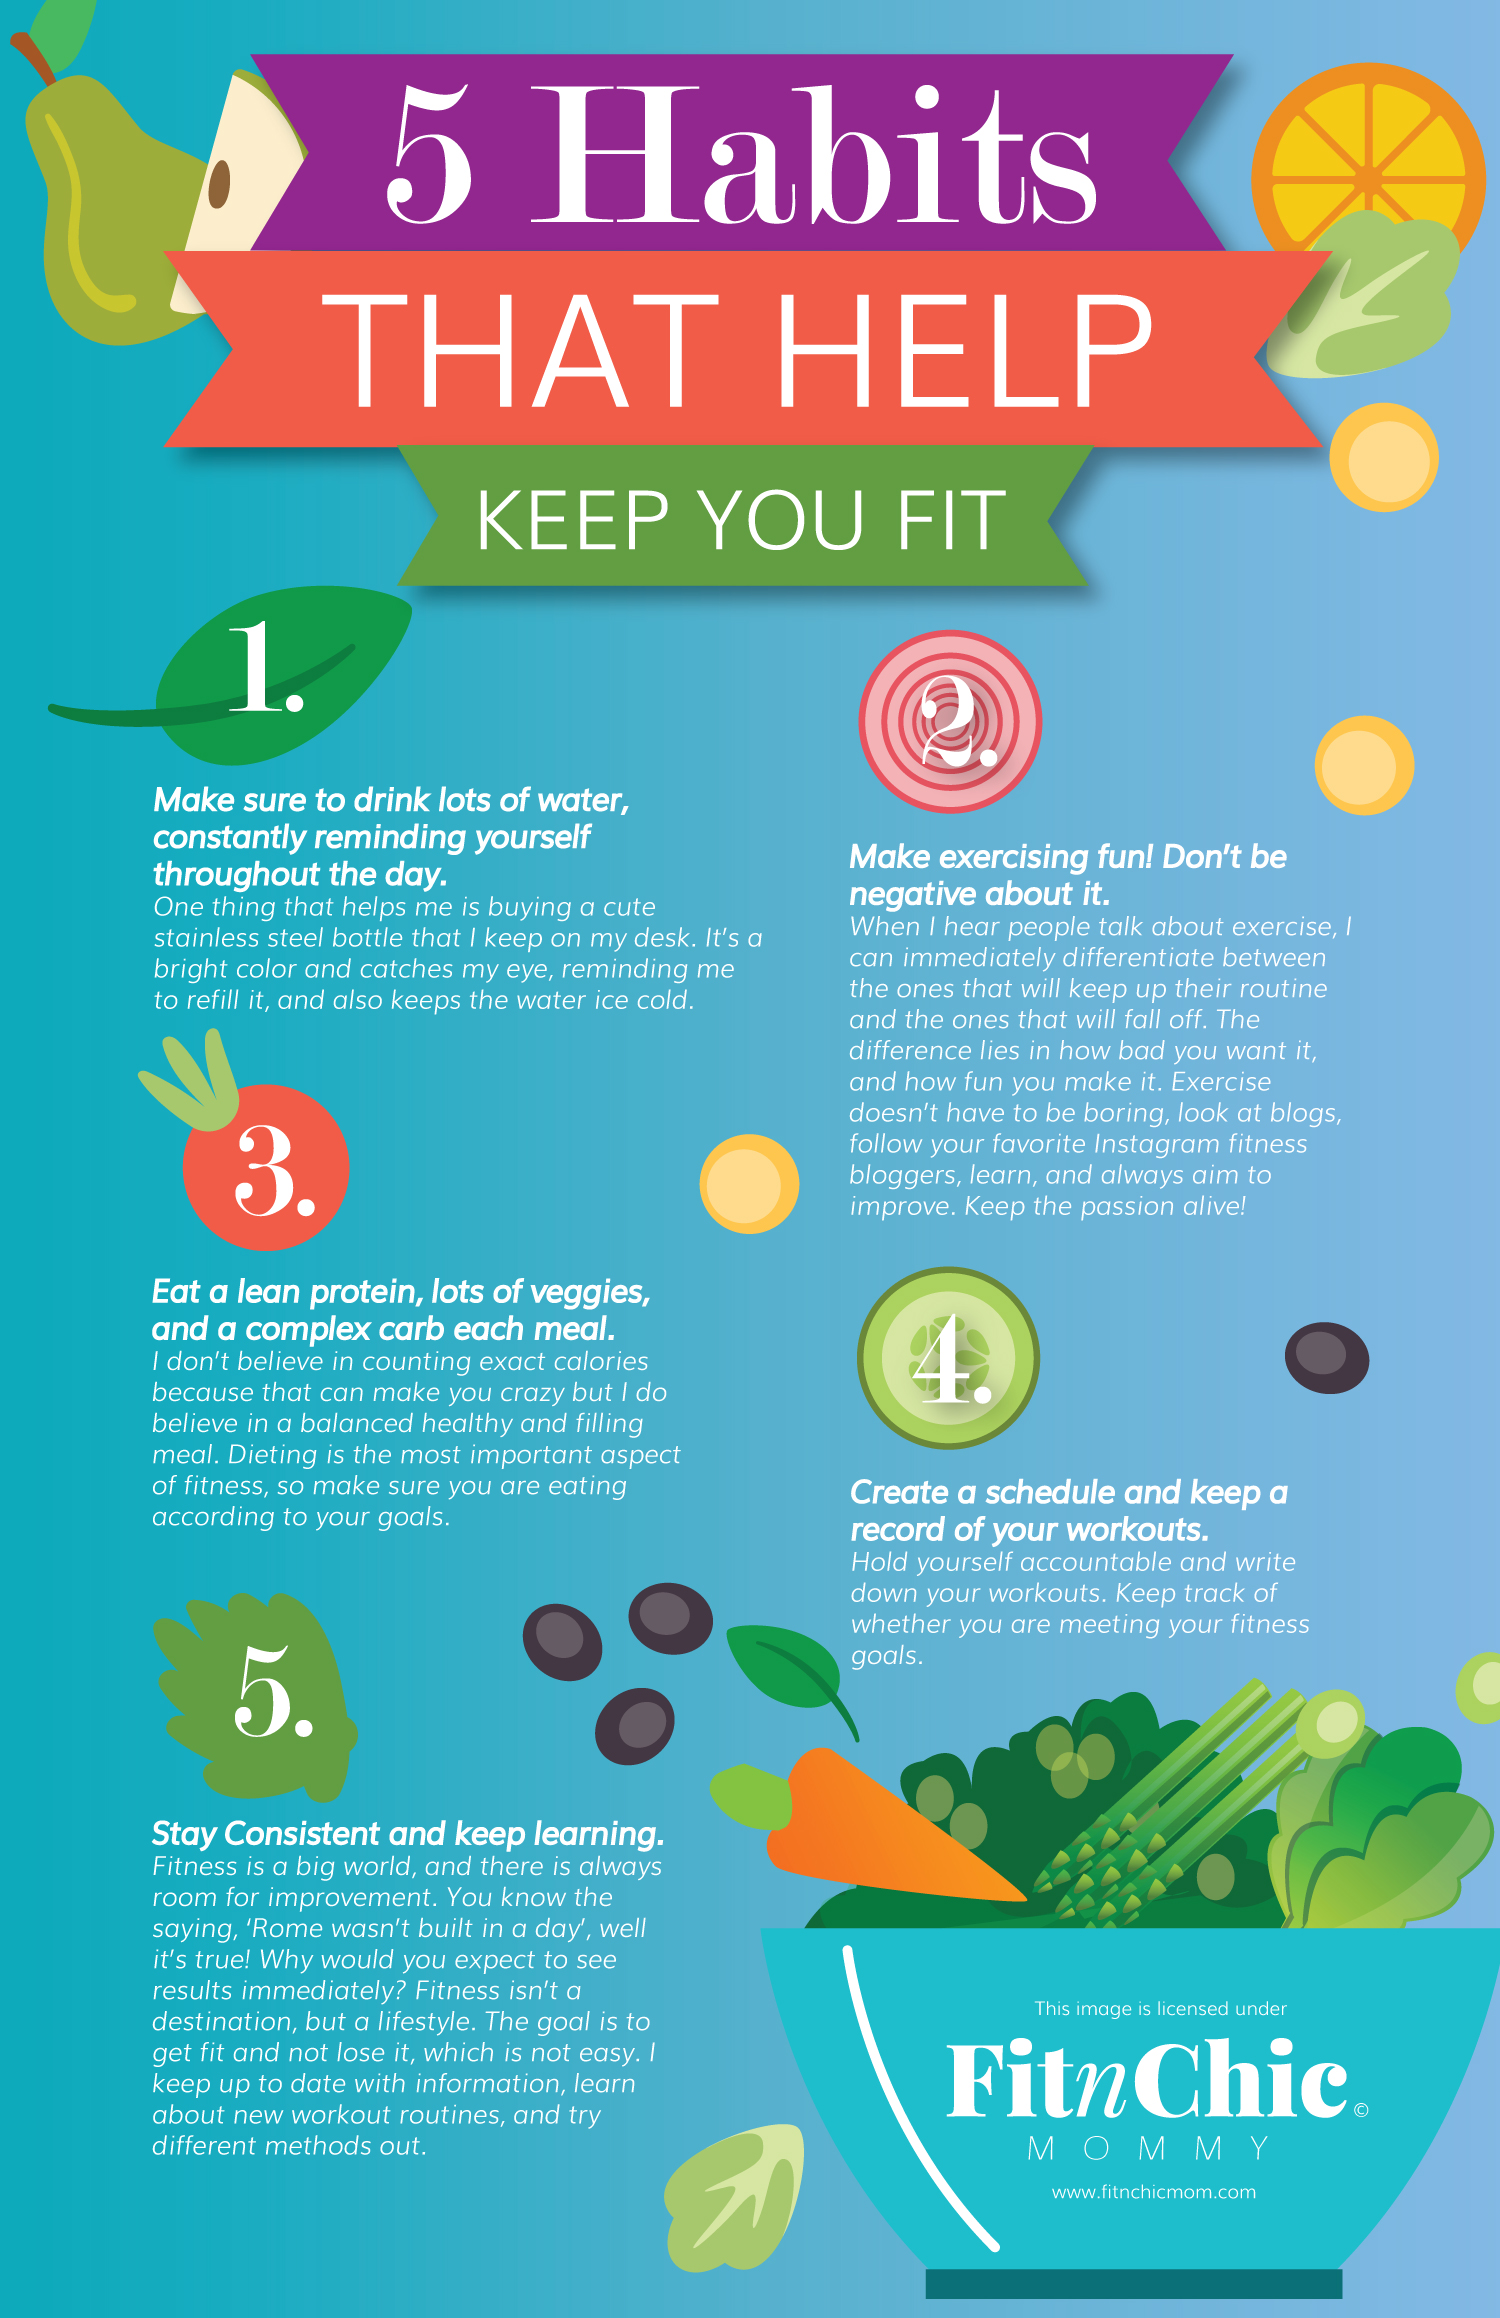 fitnchic mommy 5 habits that help keep you fit